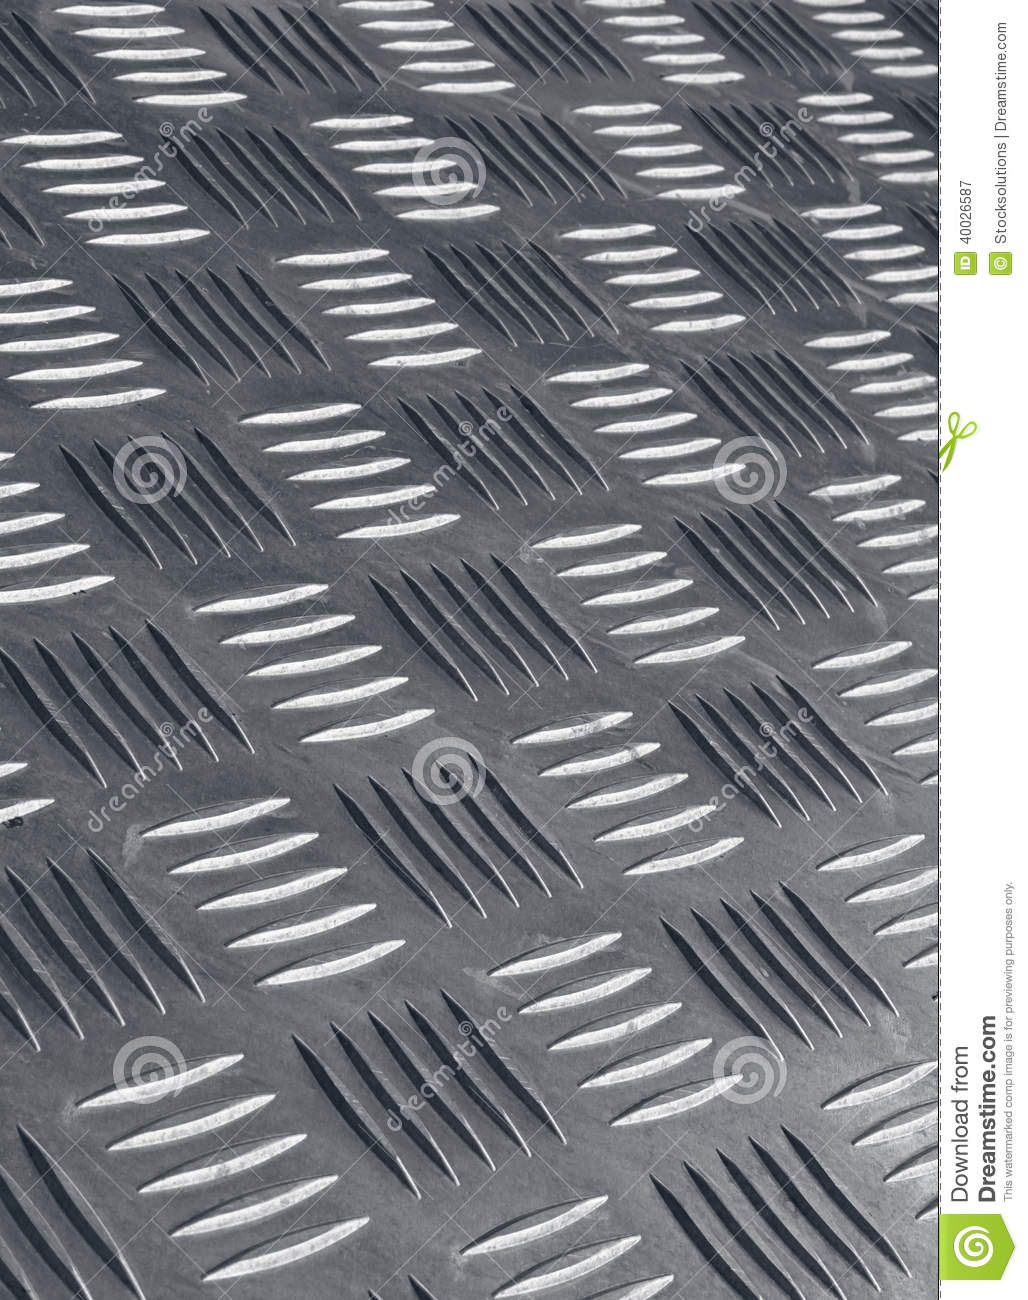 Non Skid Metal Flooring Stock Photo - Image: 40026587